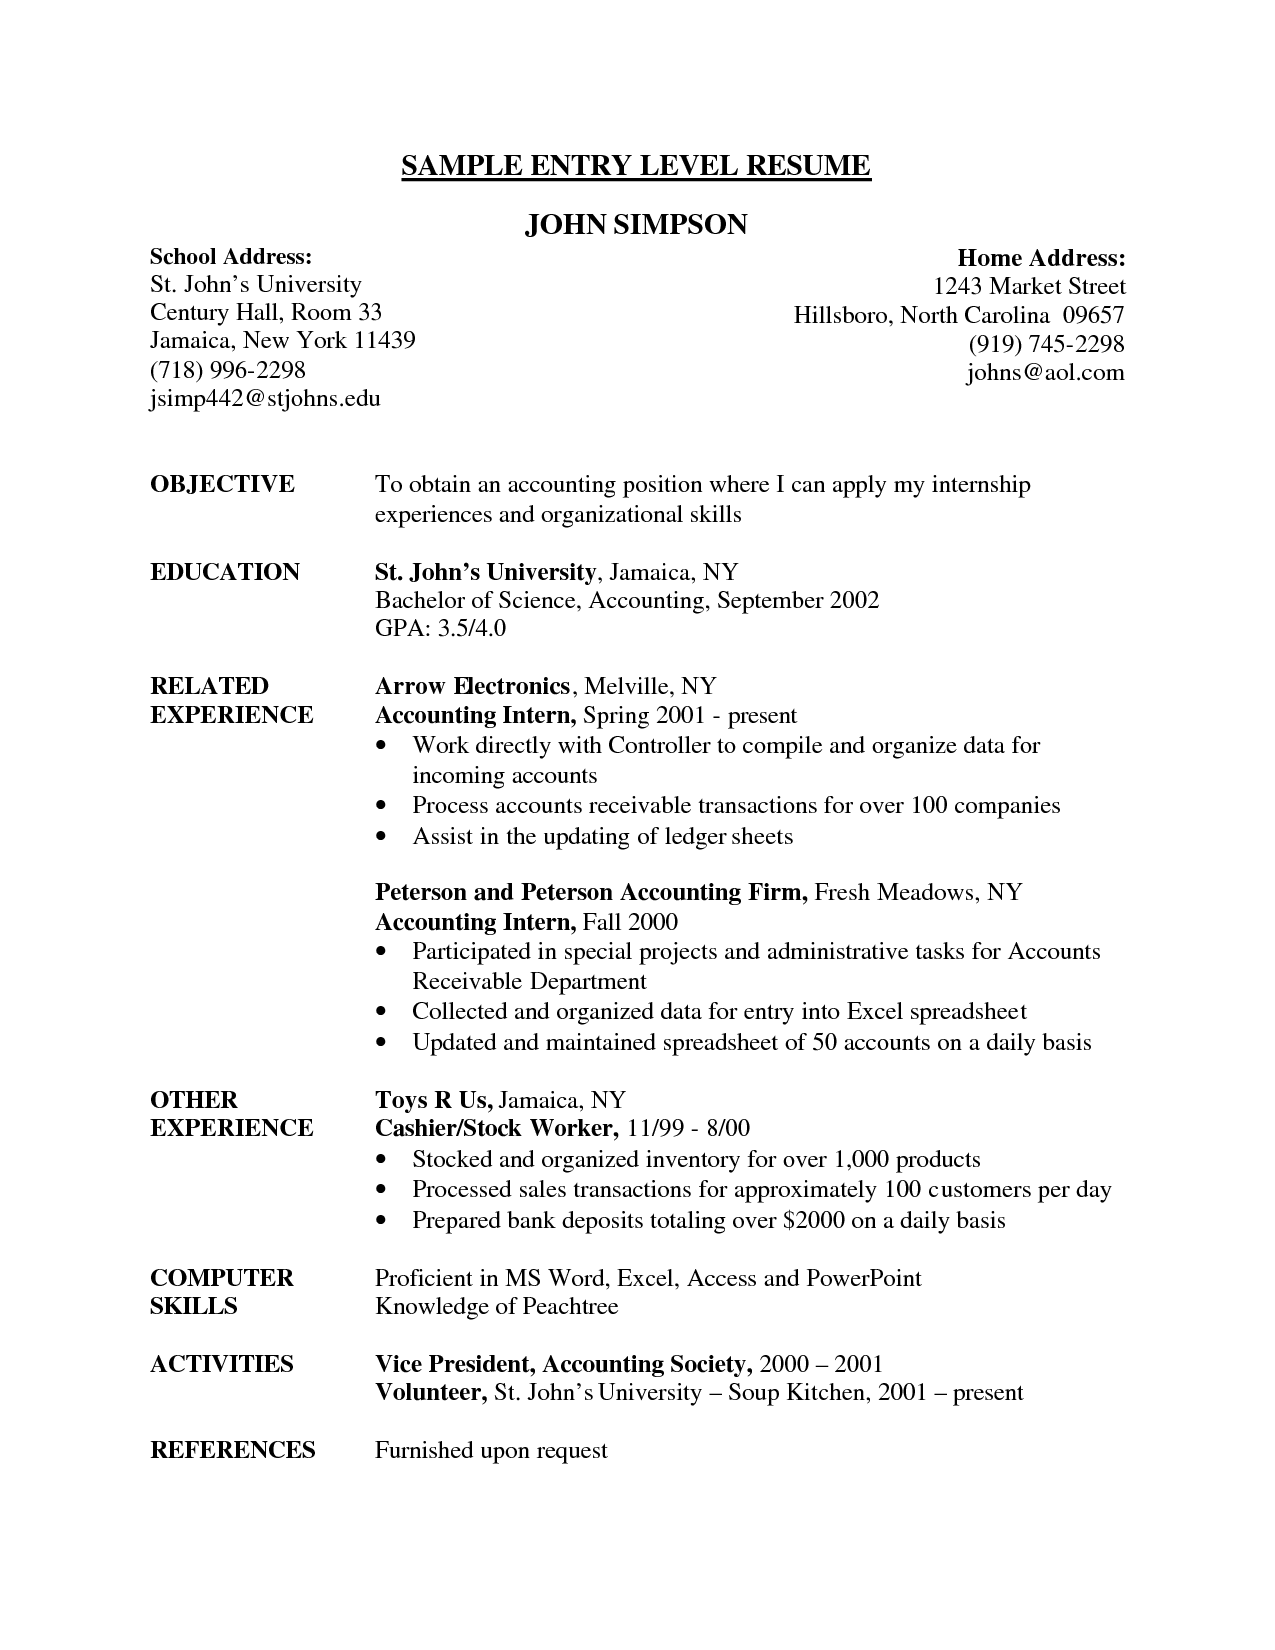 Sample Profile For Resume Example Of Resume Profile Entry Level Http Www